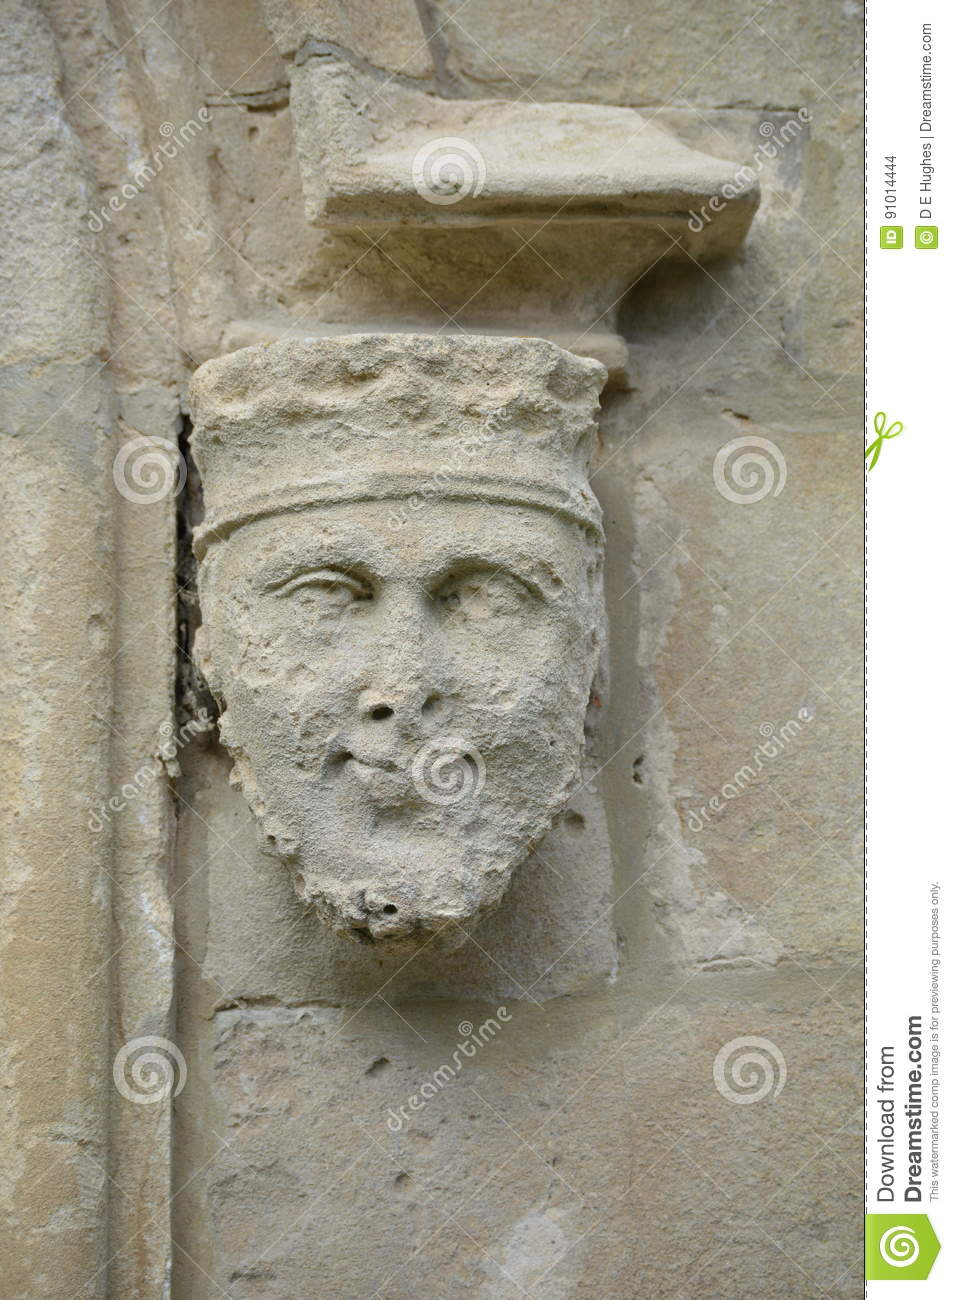 Stone face statue - Portmerion Village in Wales